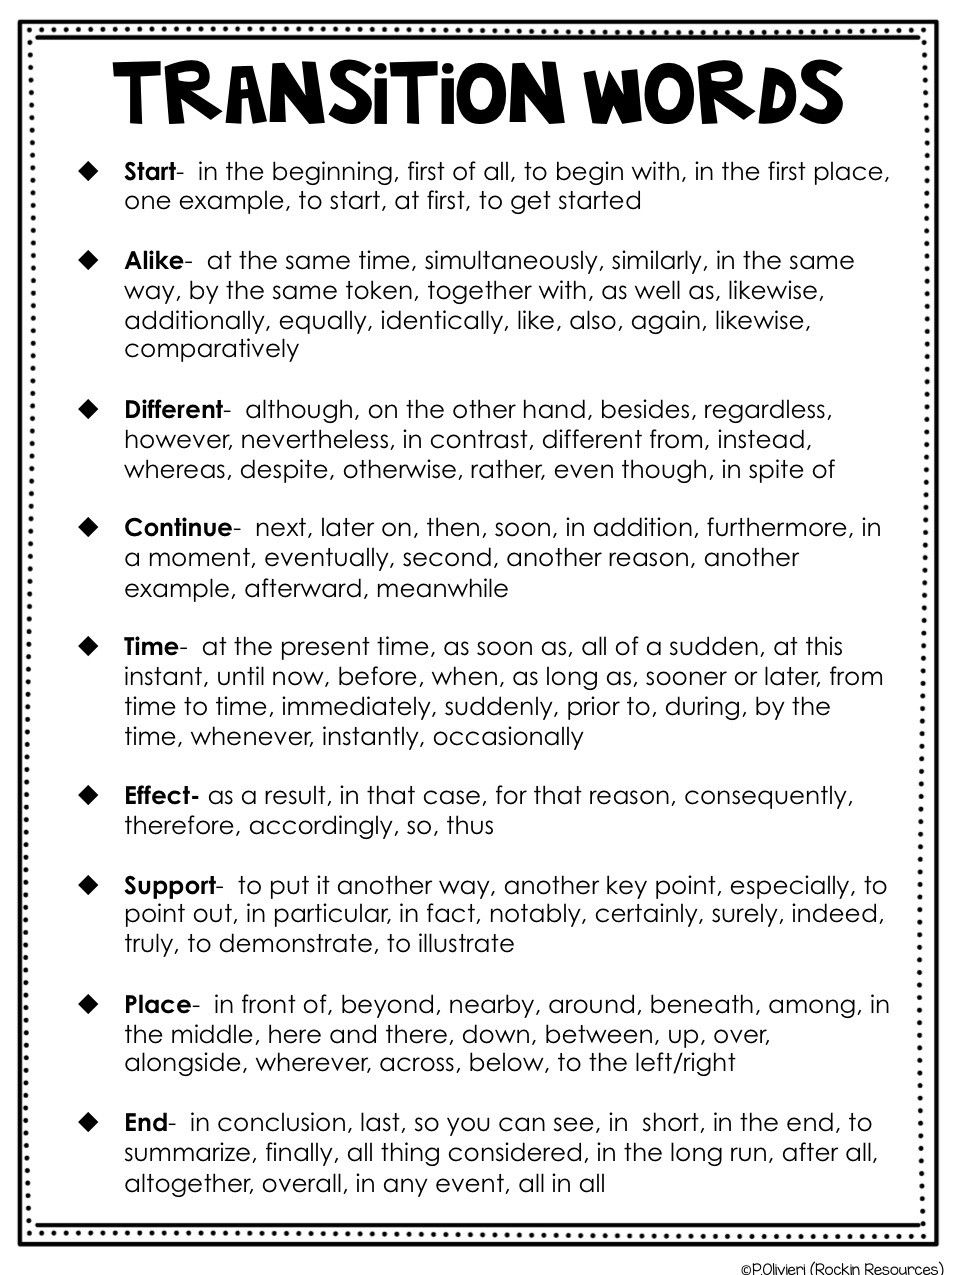 Transition Words Worksheets 4th Grade Writing Mini Lesson 6 Relevant Details